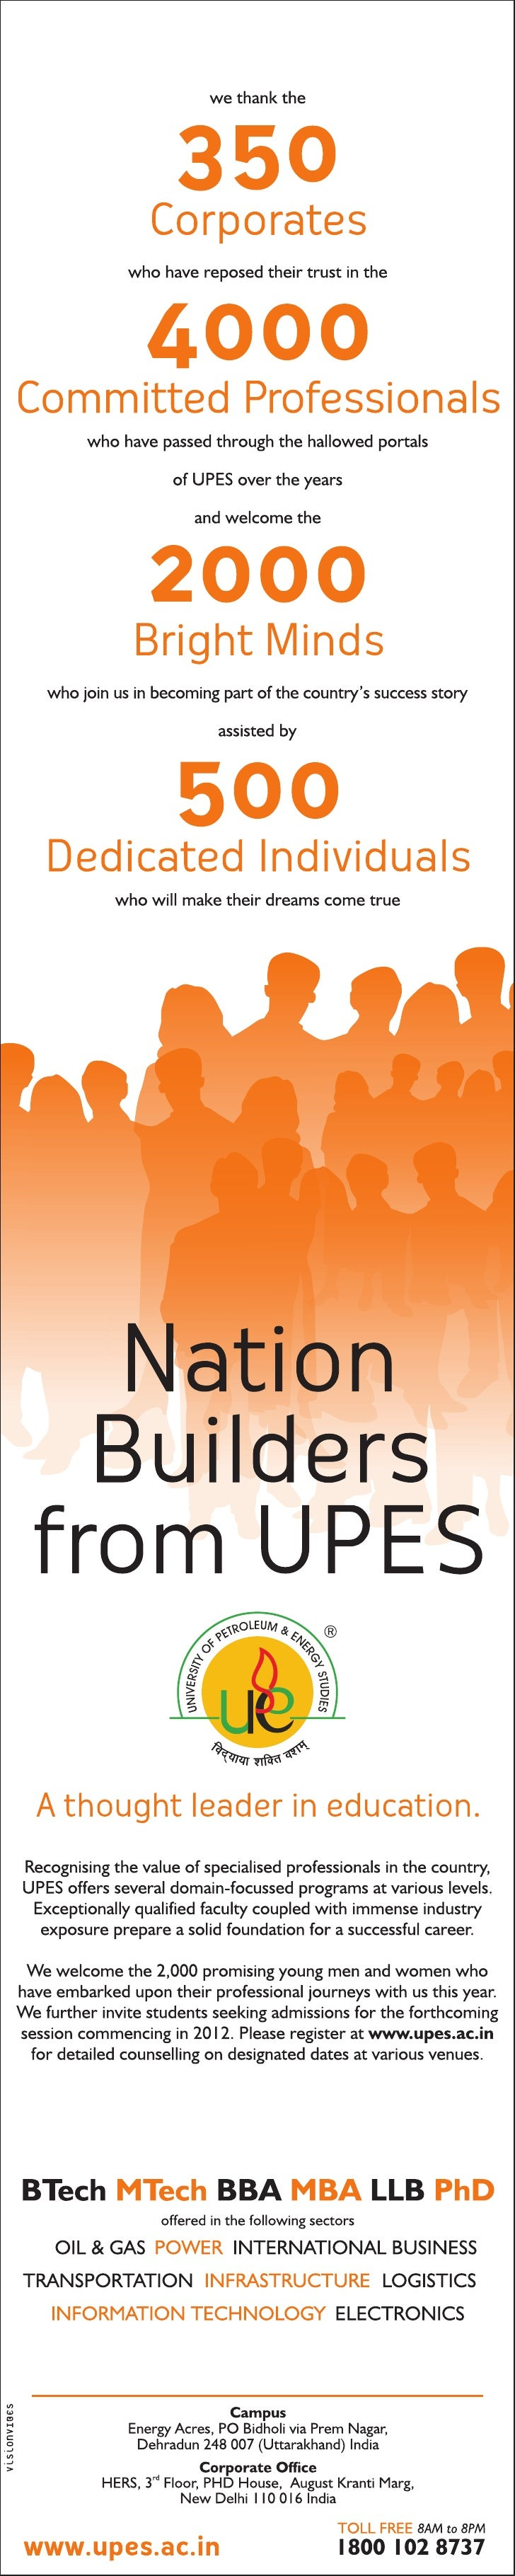 Nation Builders From UPES - Kick start 2012